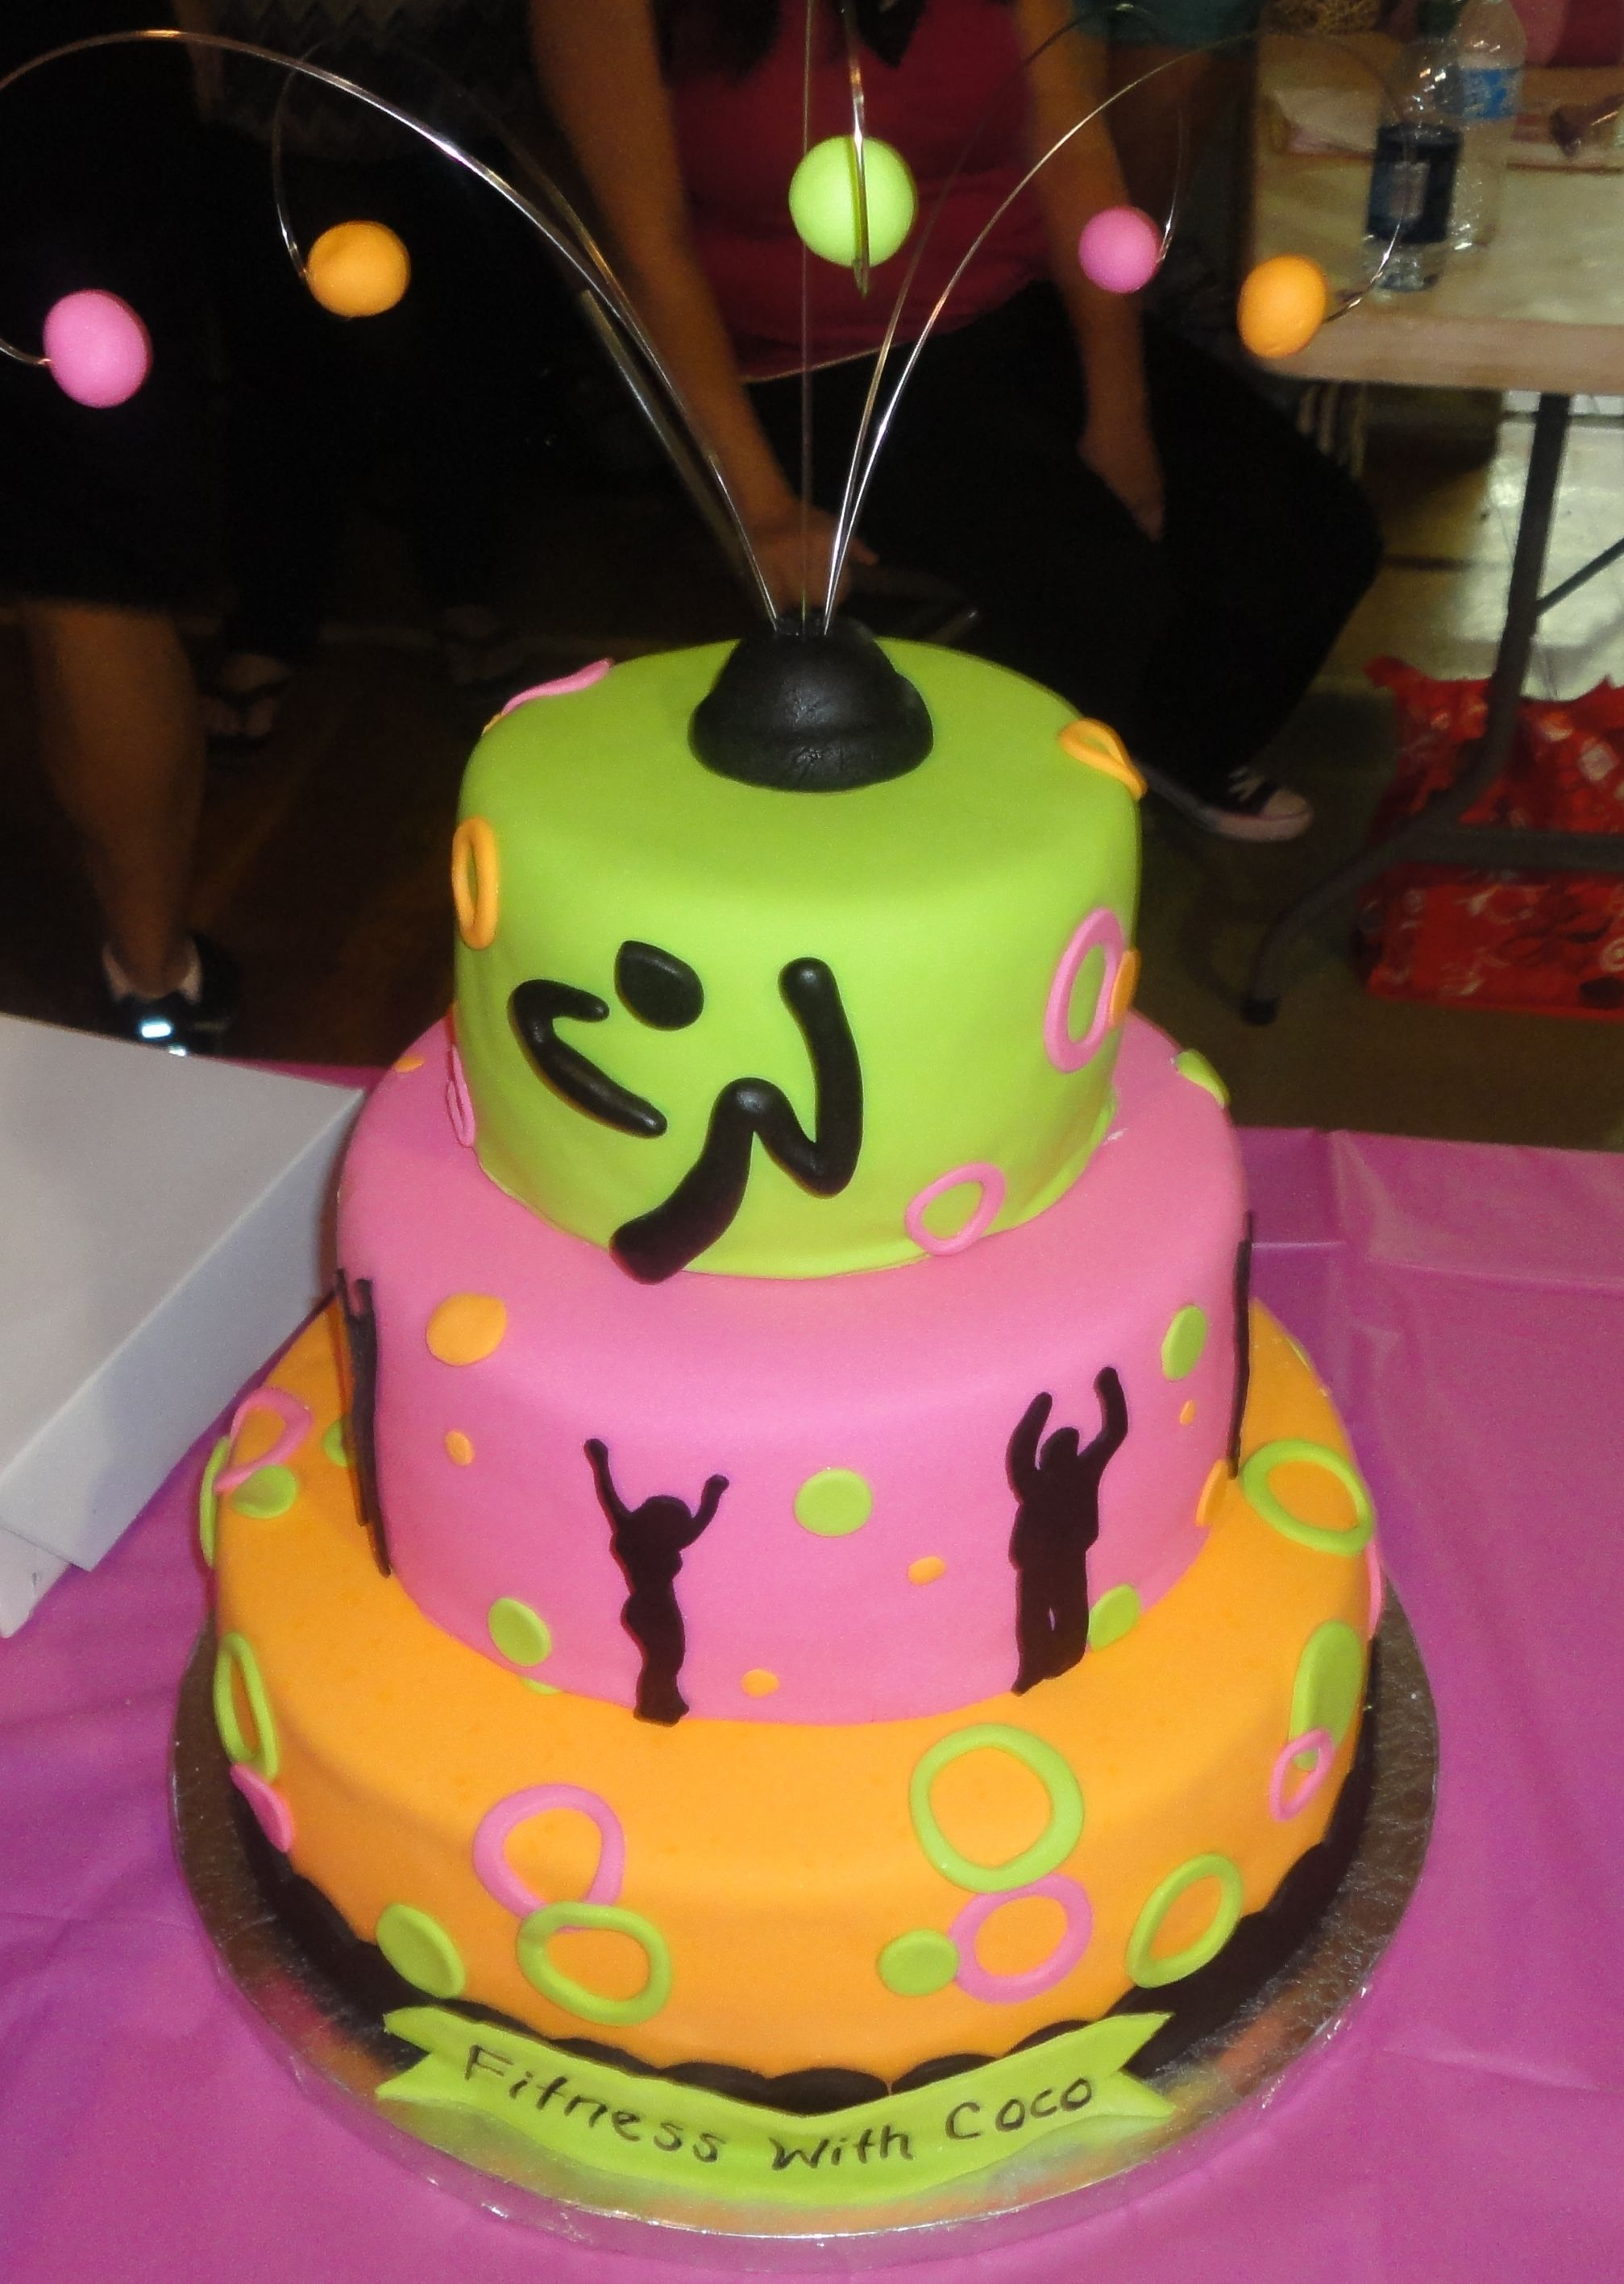 Gimnasio 9f Of Zumba Cake Zumba Cake Ideas Pinterest Tortilla